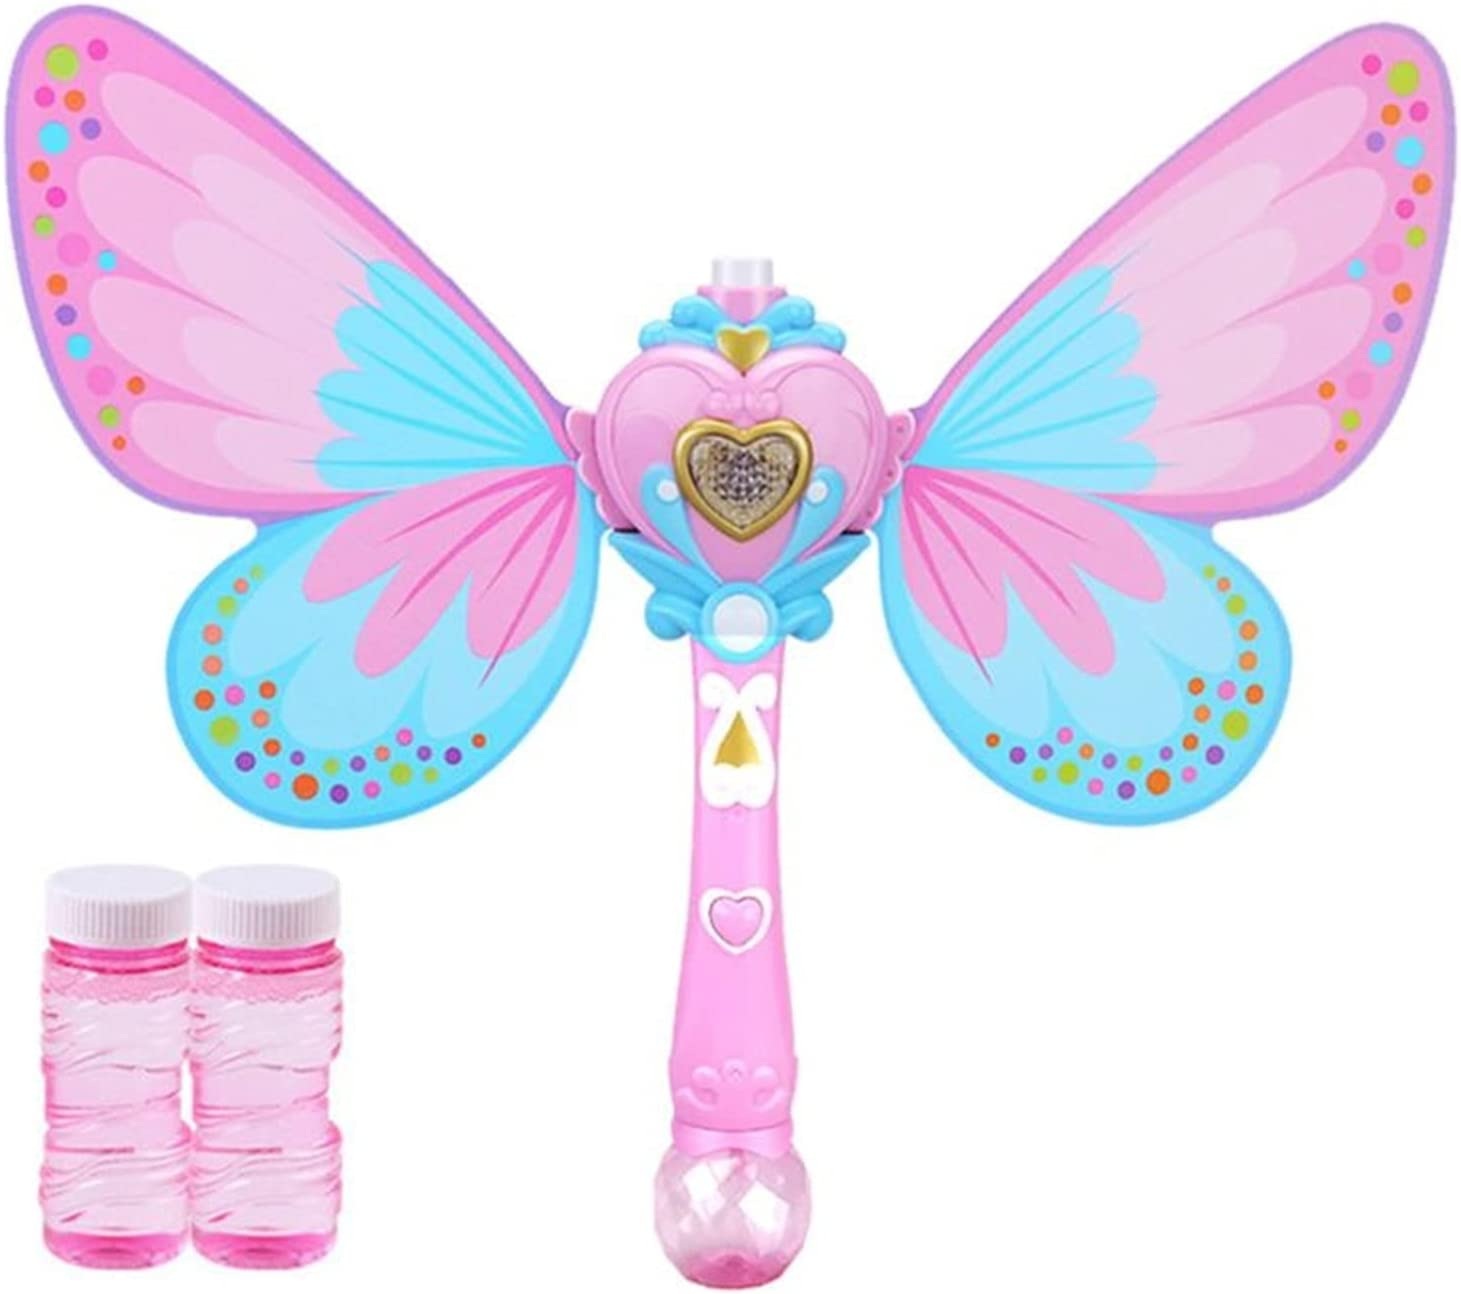 LUBINGT Princess Wand Free shipping anywhere in the nation Bubble Outlet ☆ Free Shipping Machine Kids Bu Magic Handheld